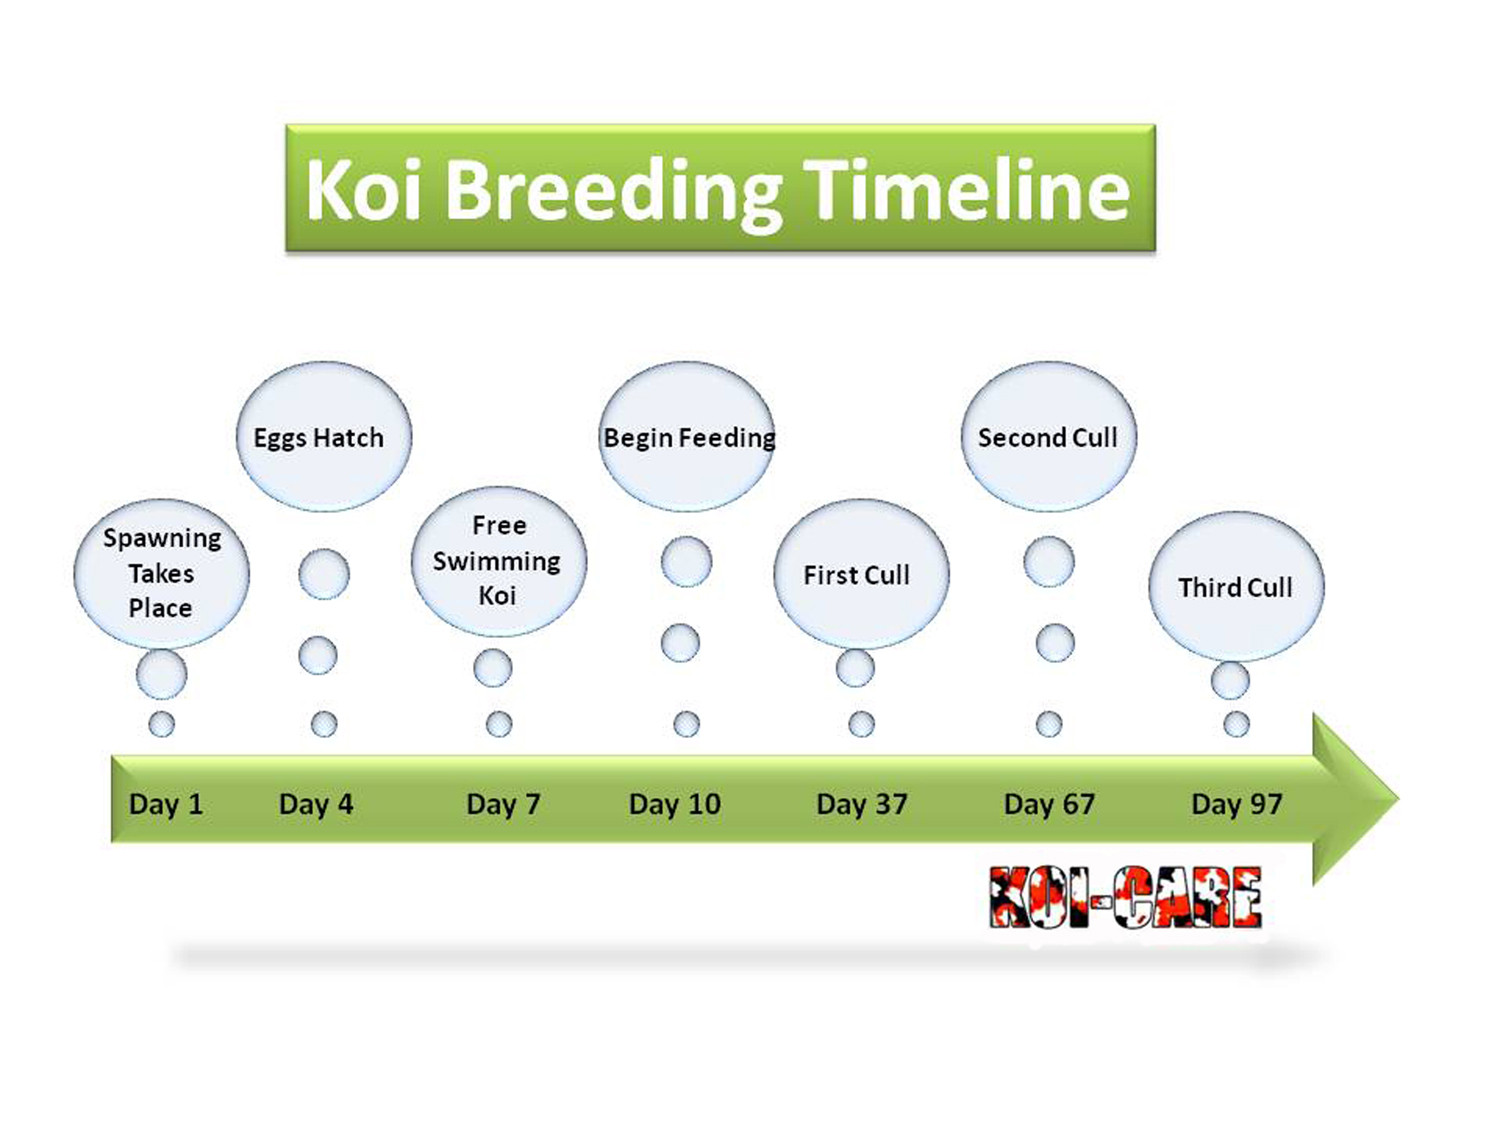 Koi Breeding Timeline of Events Infographic